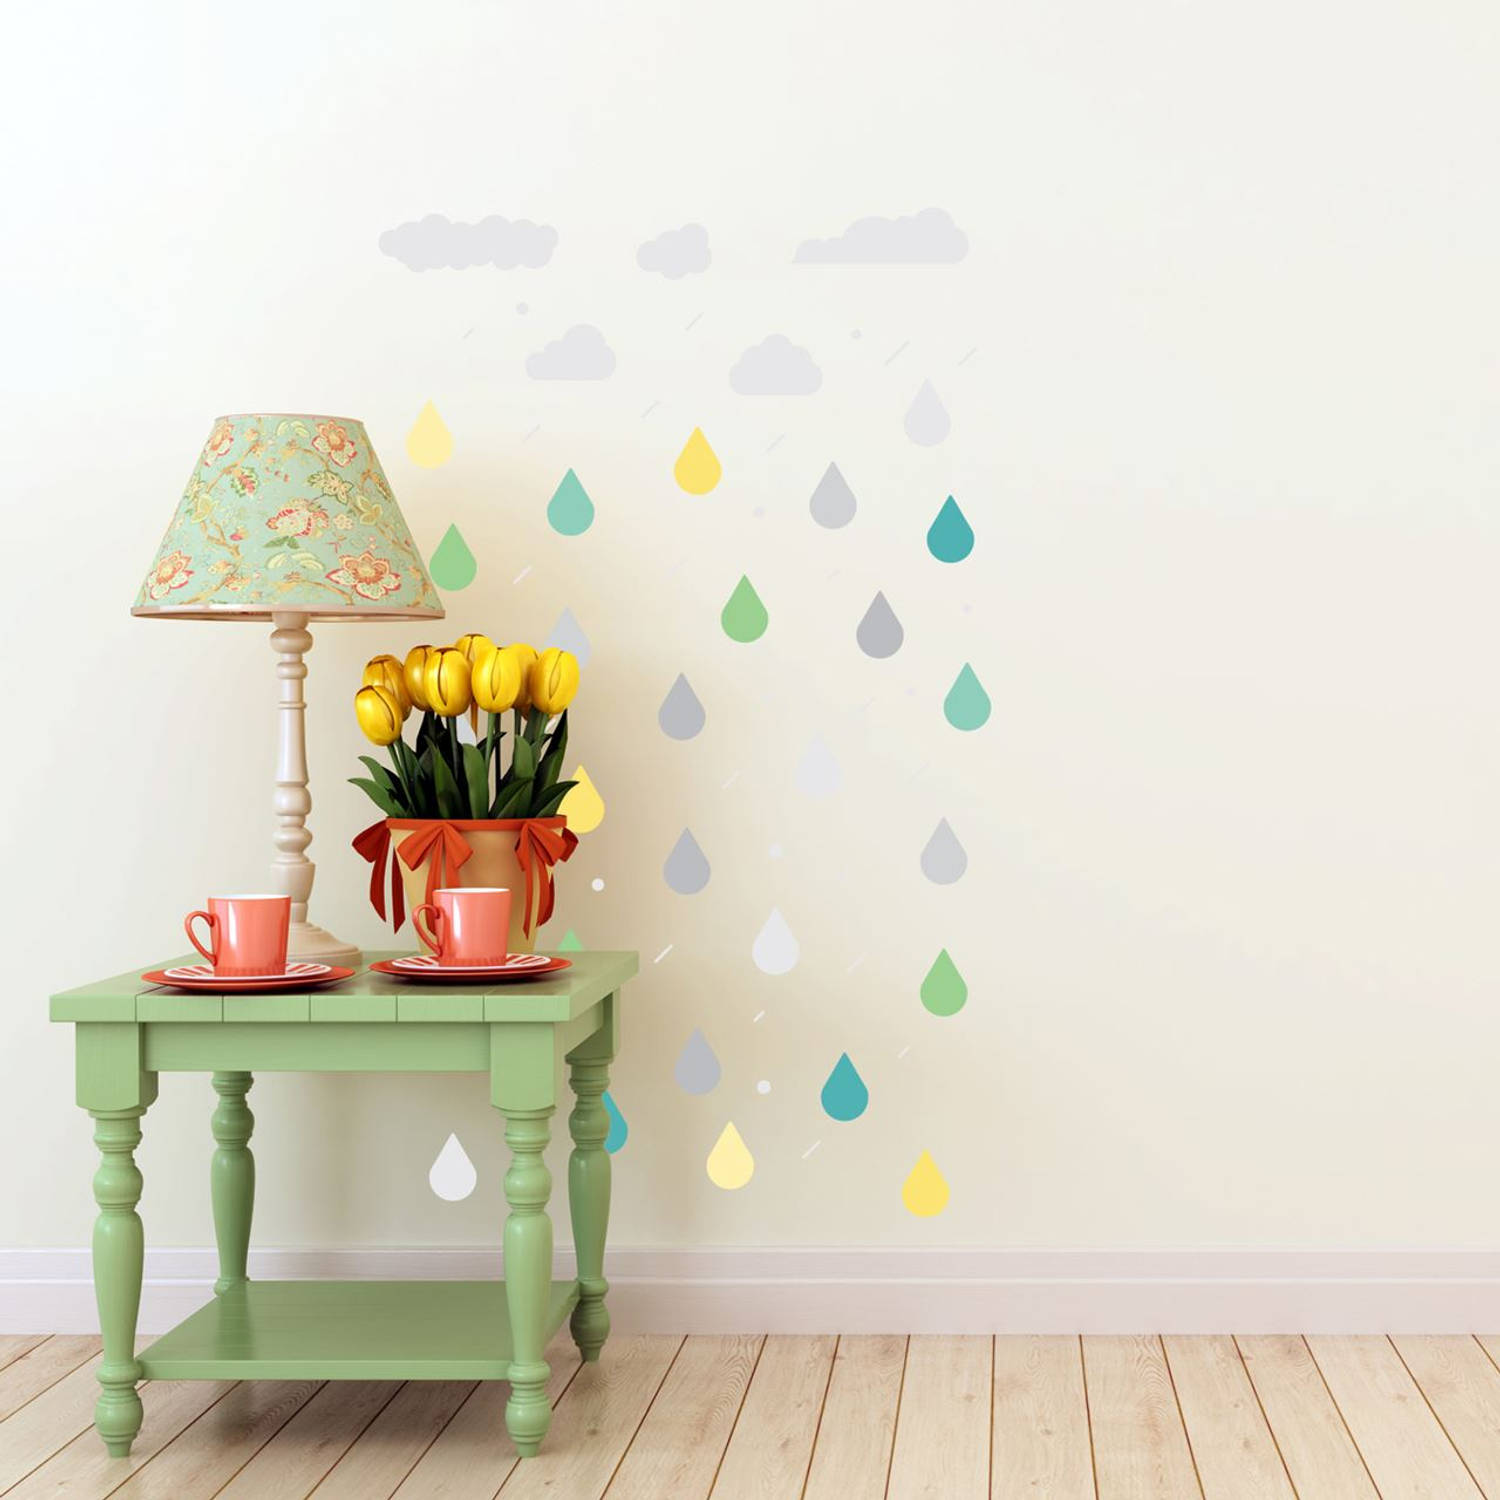 Walplus home decoratie sticker - wolken & regendruppels